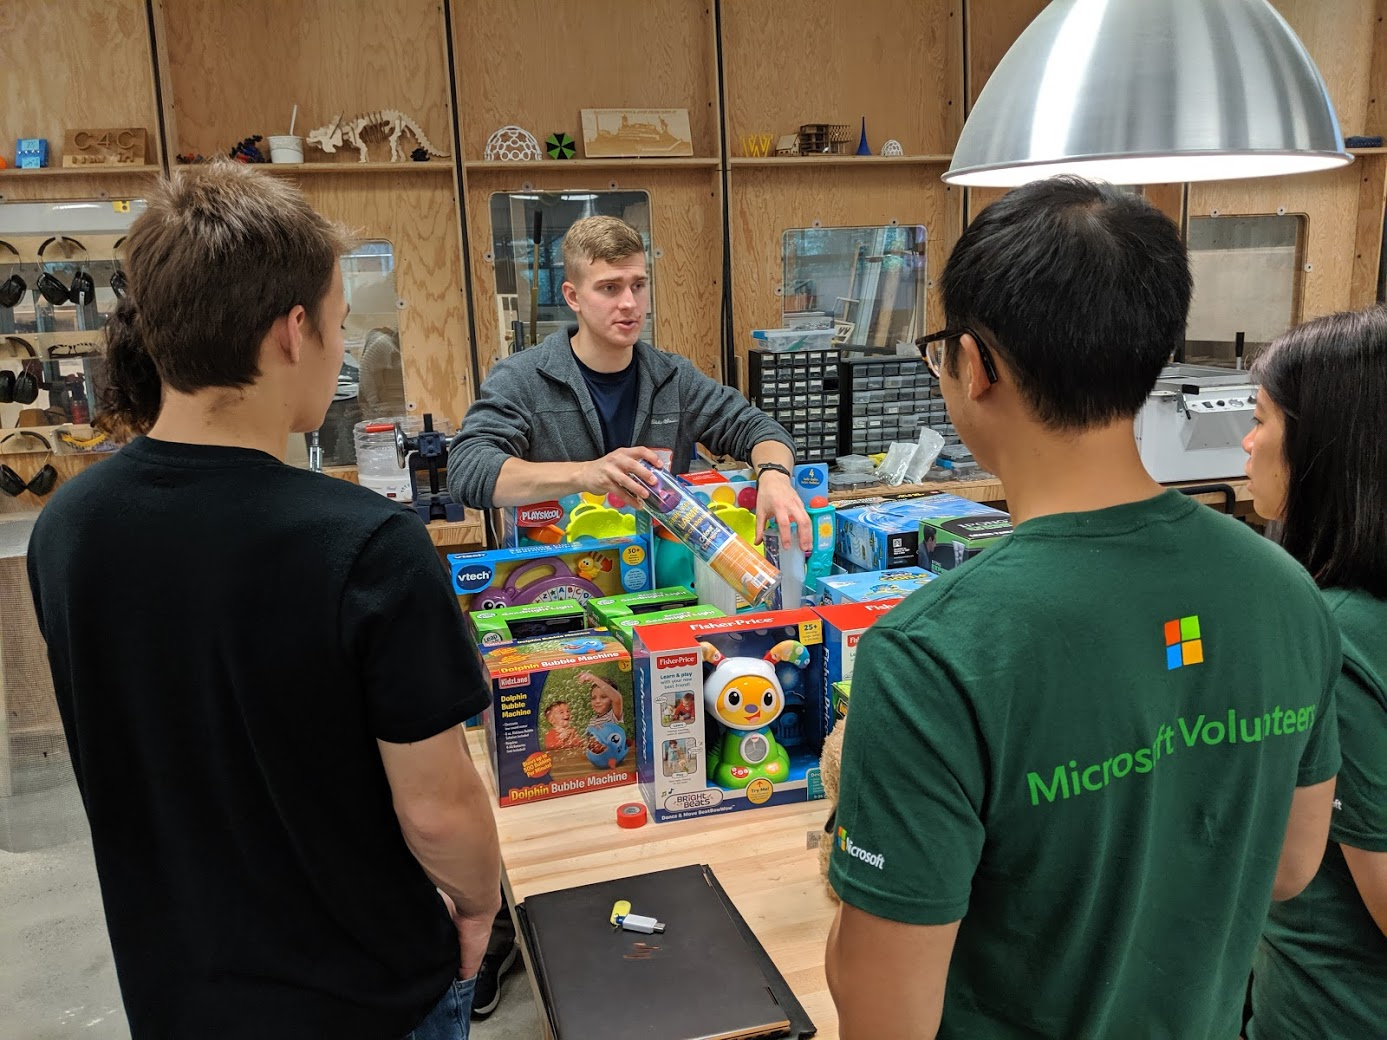 Several people, two in green shirts and one in a black shirt, listen to a young gentleman in a gray jacket as he talks about the toys in front of him